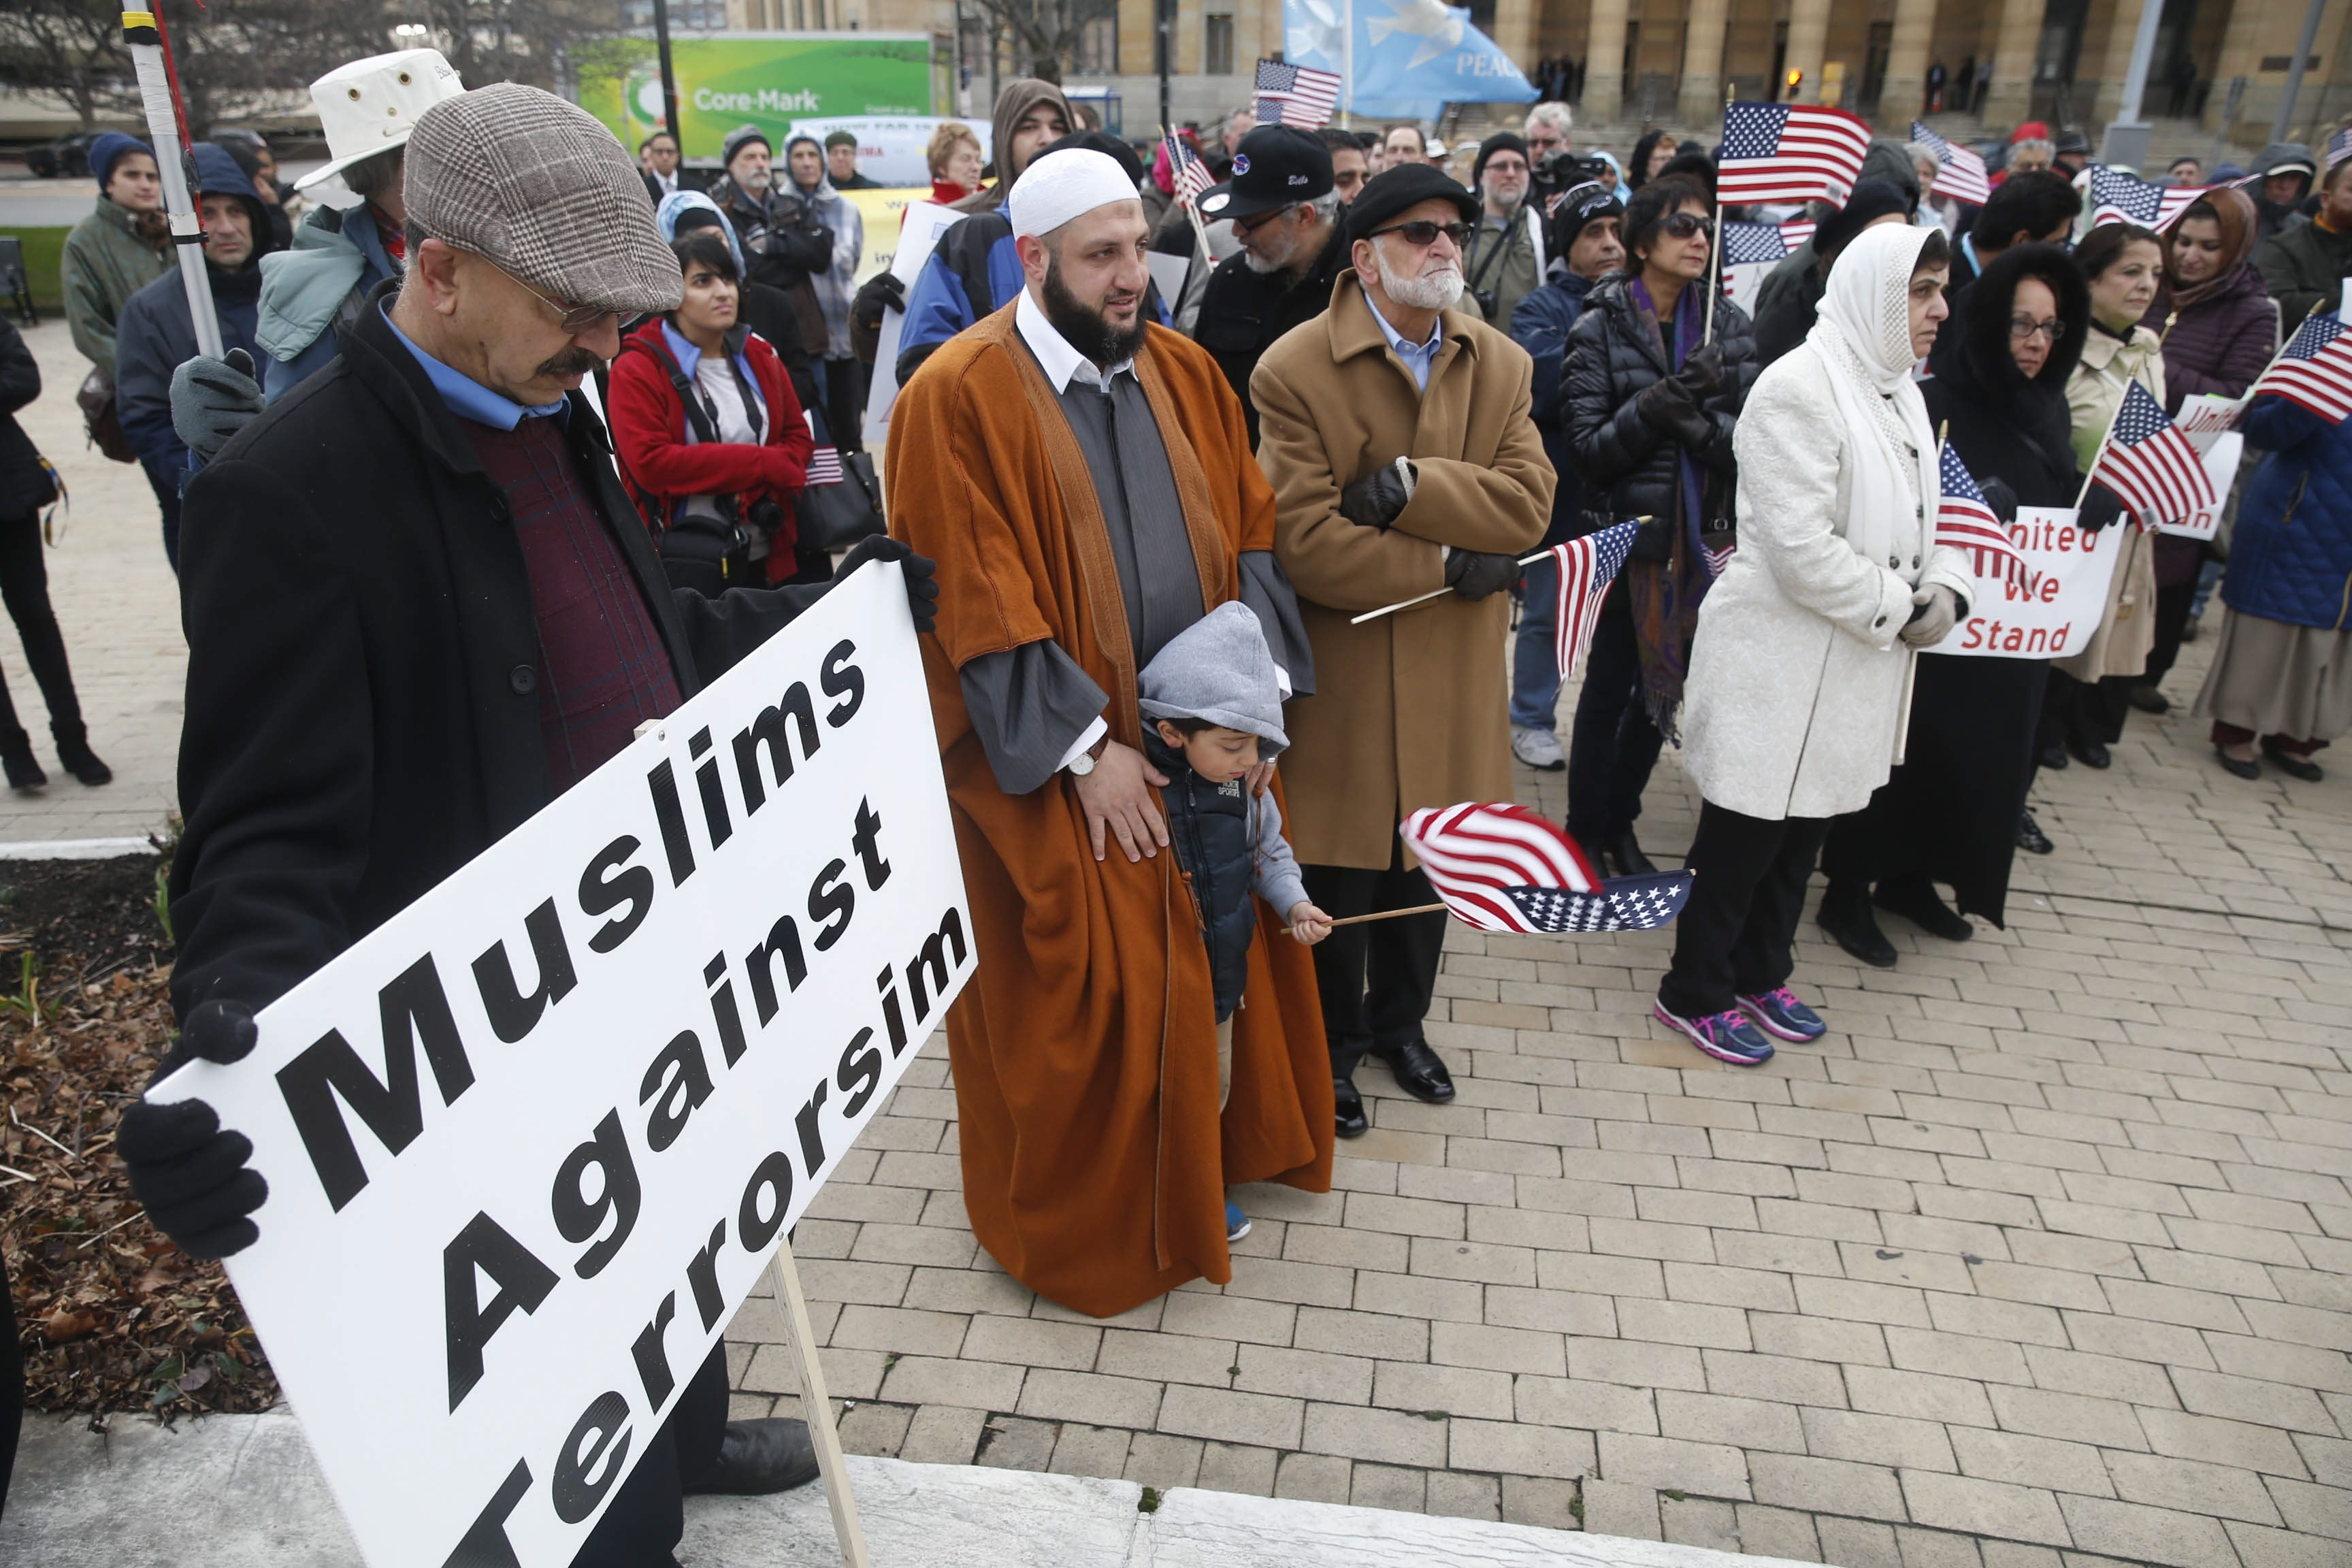 Members of the Muslim community stood together to affirm their civic pride in being Americans, and to stand against terrorism in Niagara Square on Thursday, Dec. 17, 2015.  (Robert Kirkham/Buffalo News)